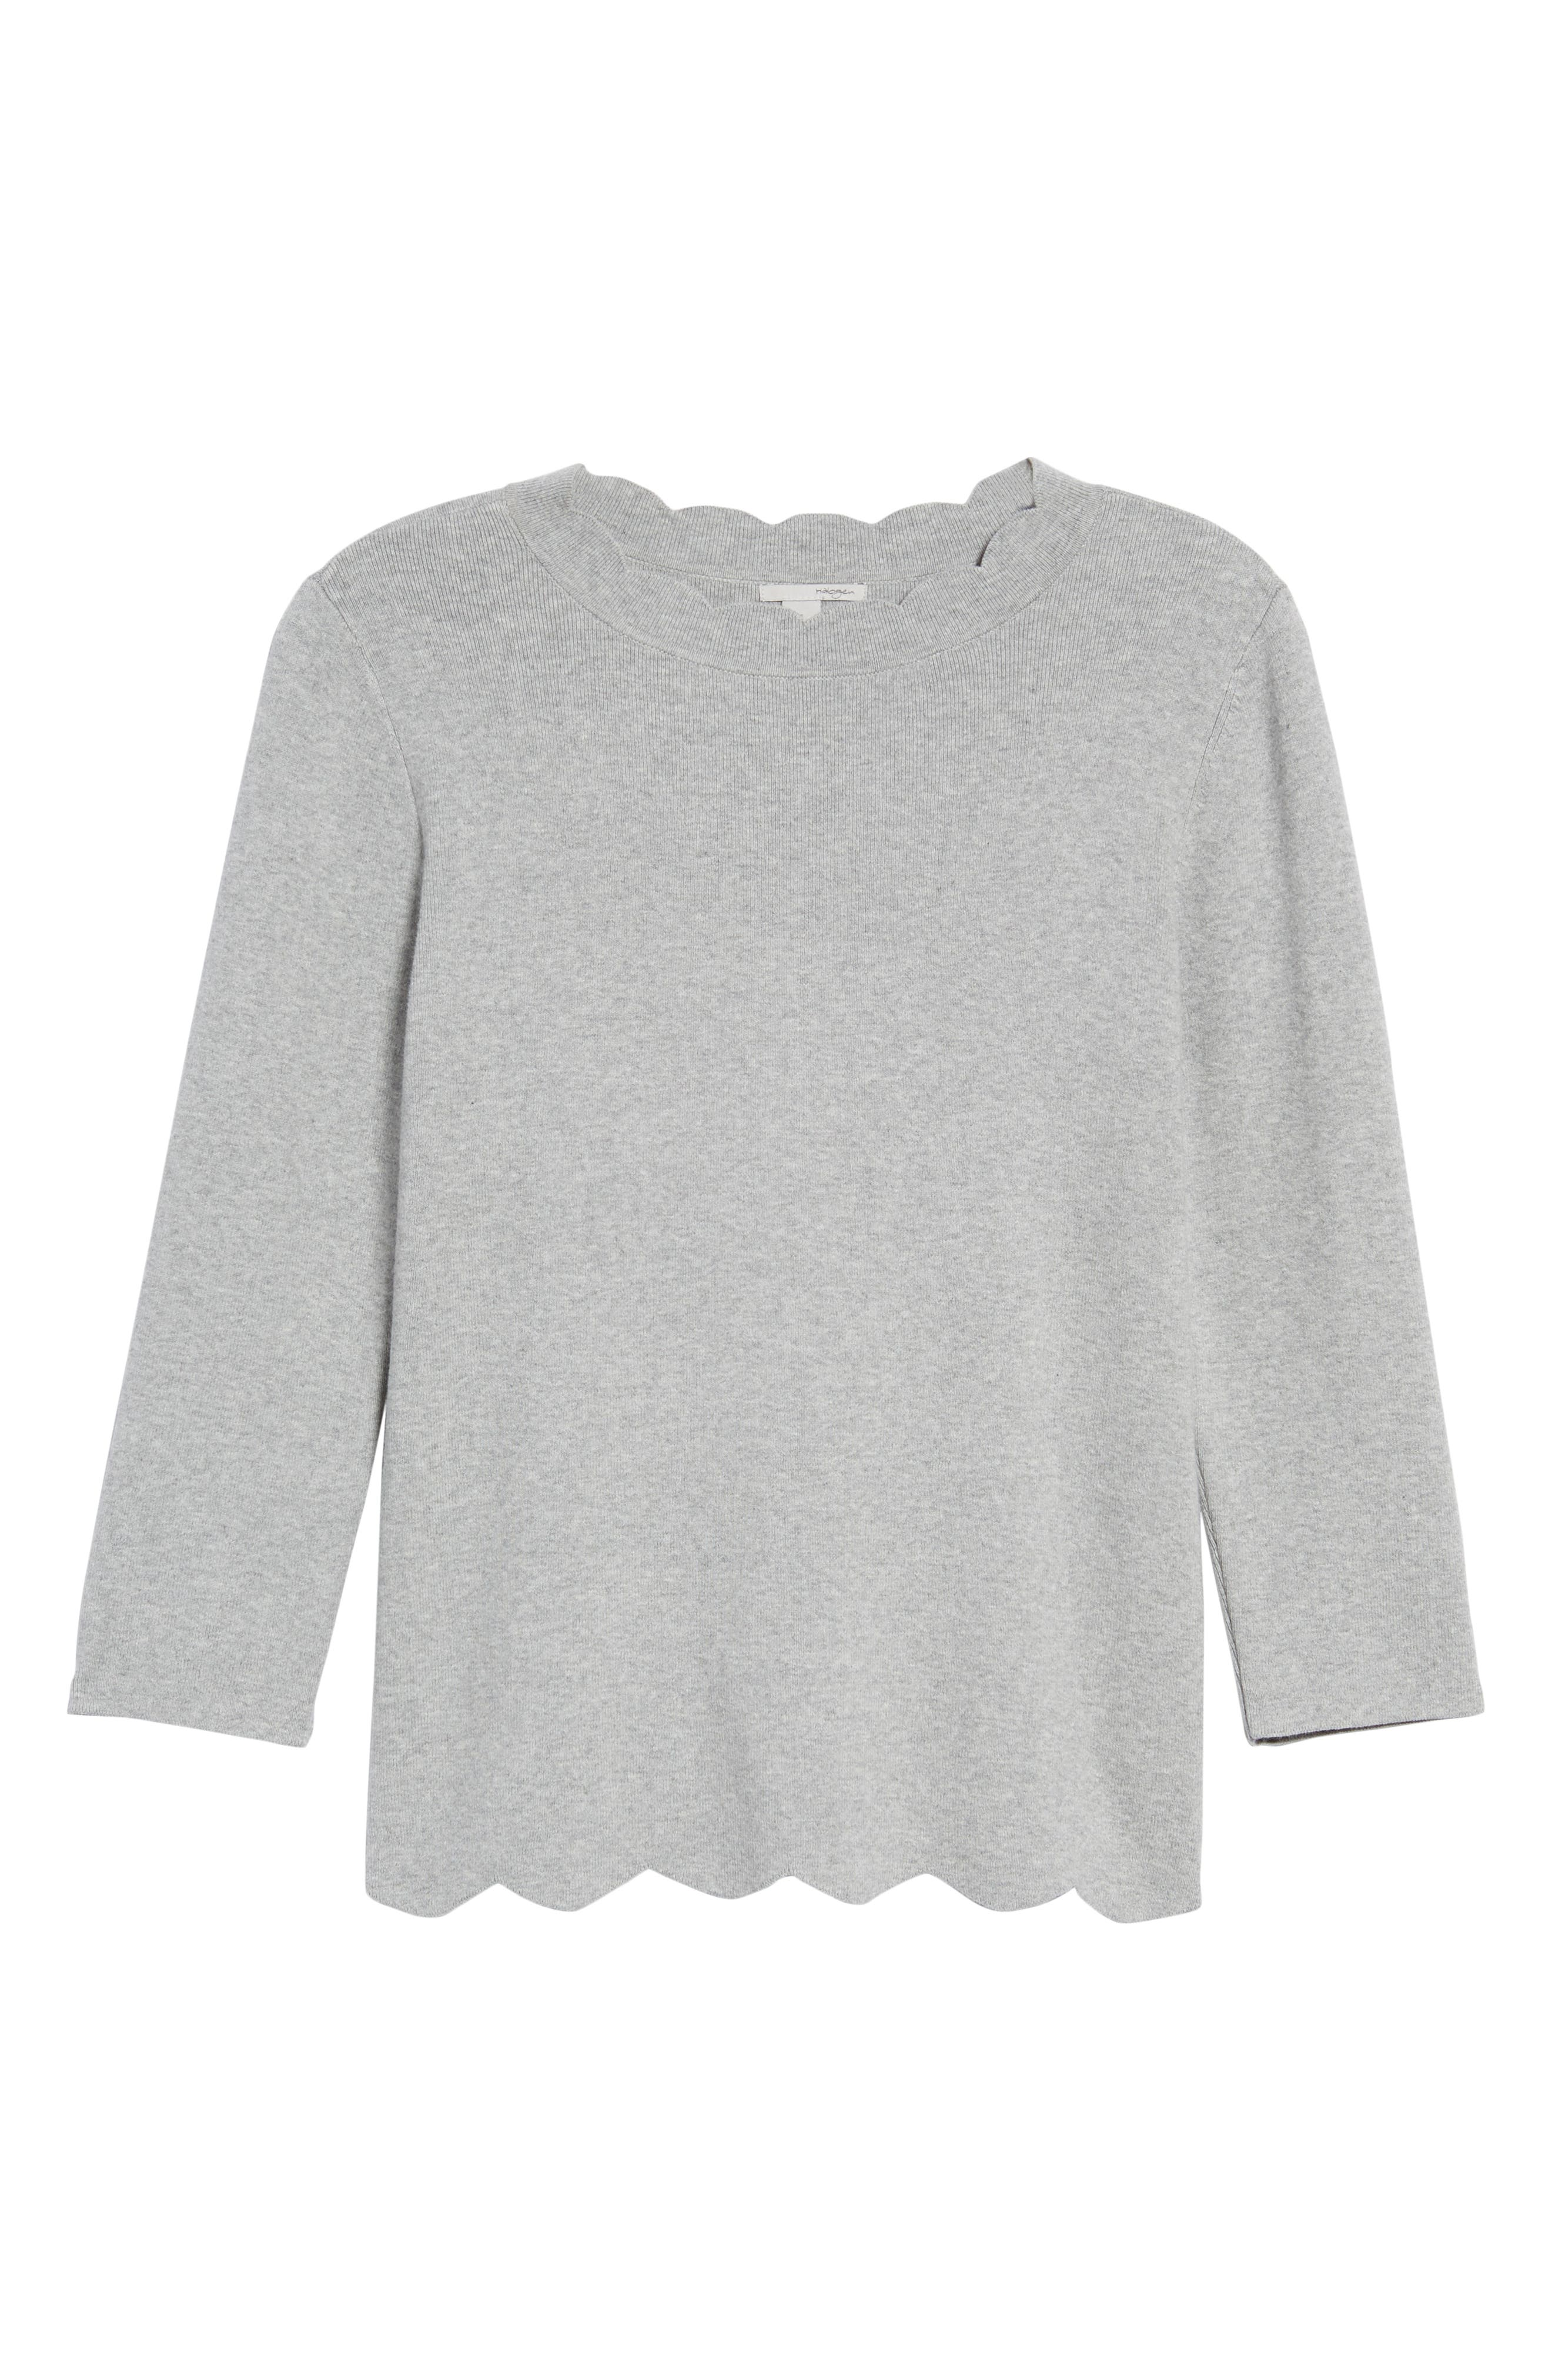 Halogen Scallop Edge Sweater,                             Alternate thumbnail 56, color,